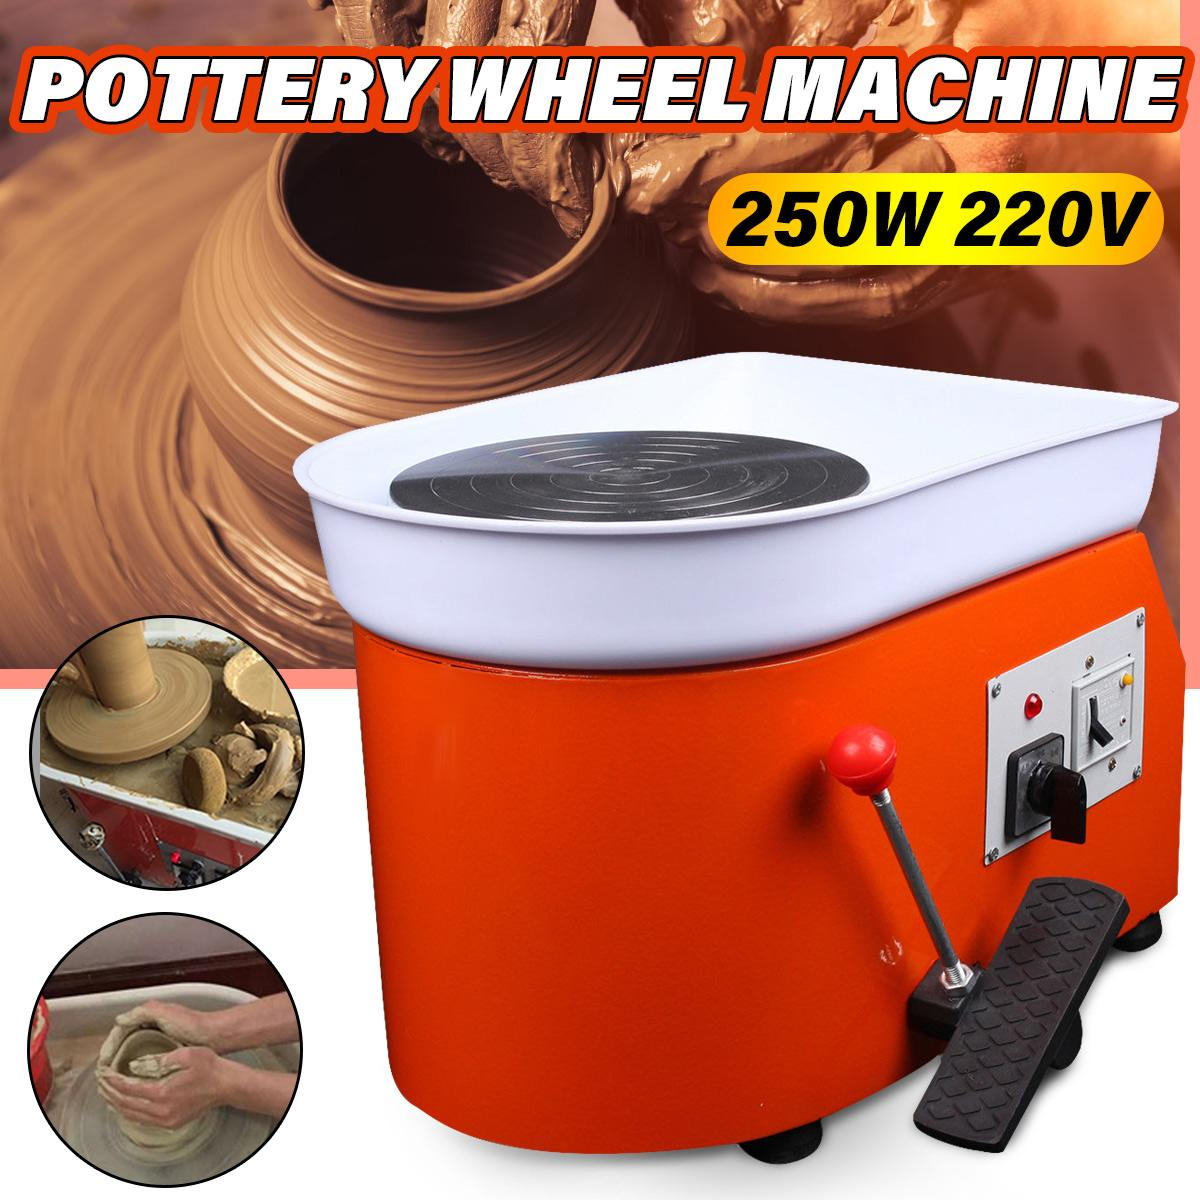 Electric Pottery Wheel Machine,Foot Pedal Switch Design,Making Ceramic Crafts,DIY Clay Art Gray